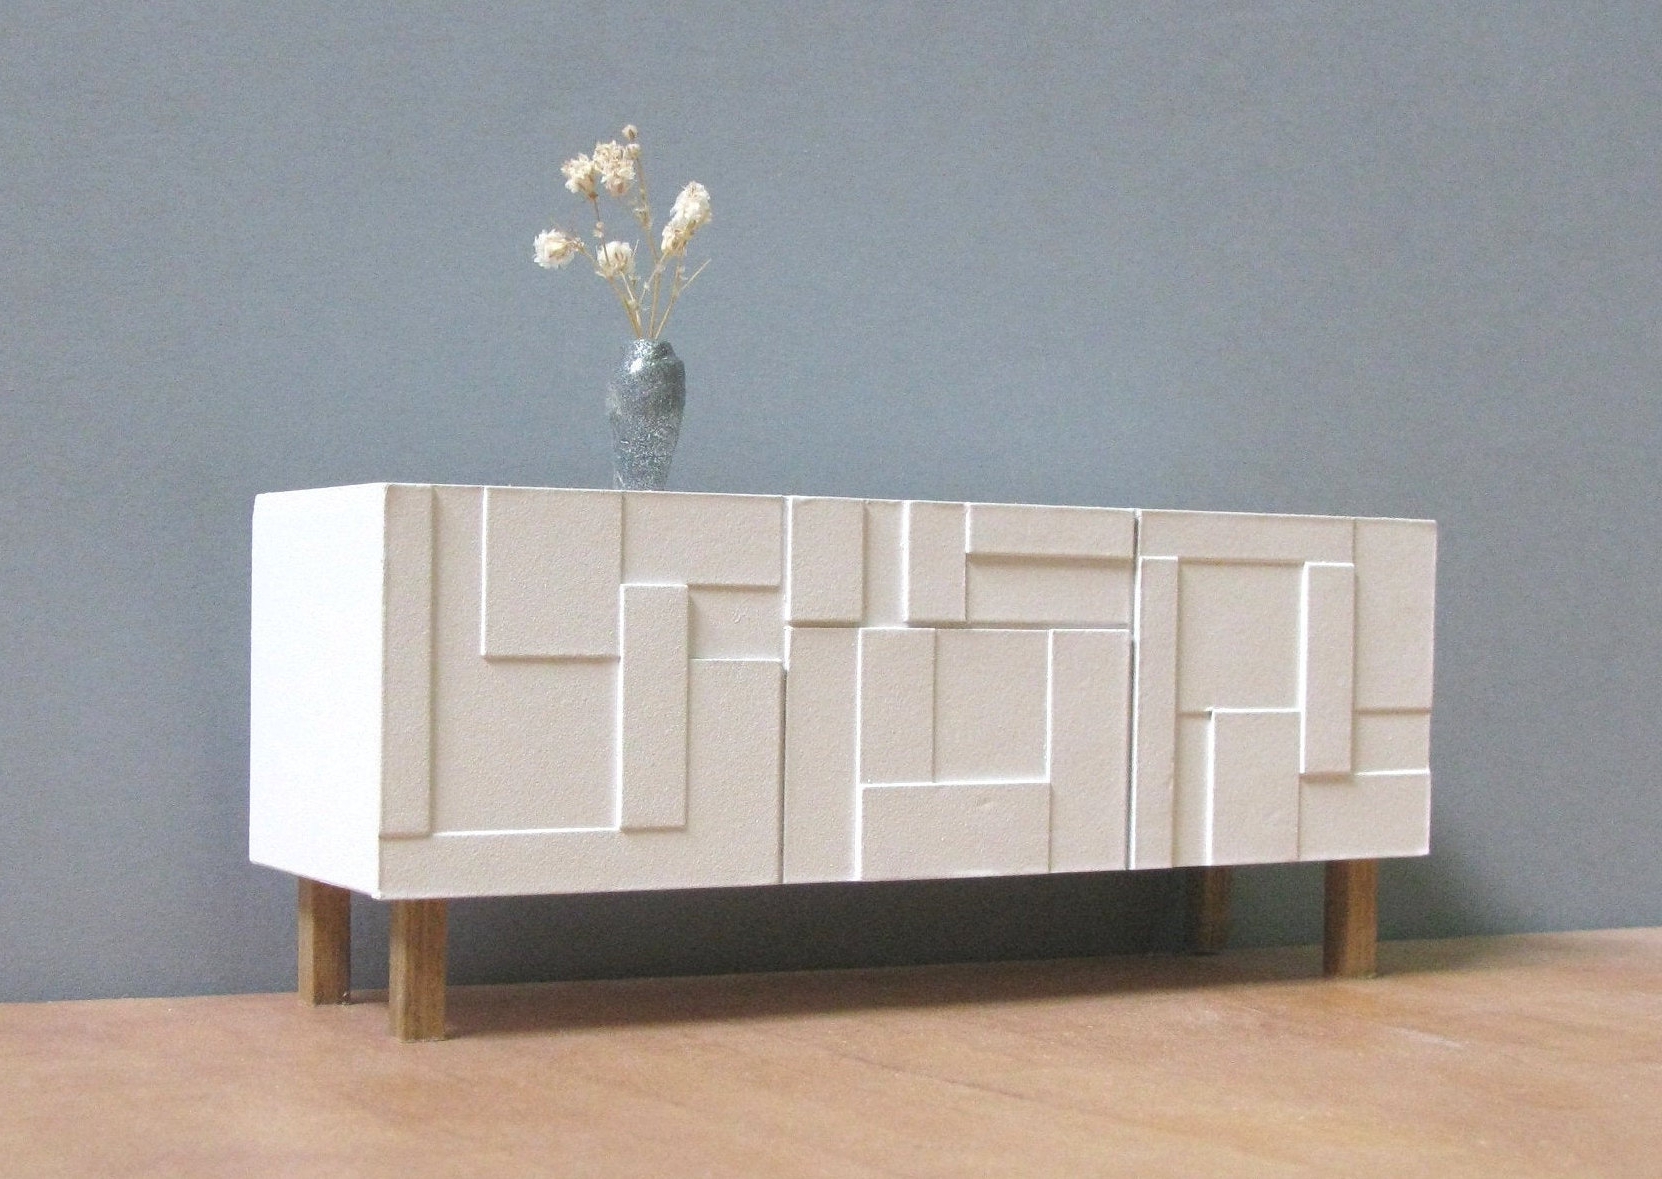 Dollhouse White Sideboard / Credenza, 1/18 1/12 Scale, Handmade Collectable Miniature Furniture, Modern Style Decor, Contemporary Design Throughout Floral Beauty Credenzas (View 20 of 20)